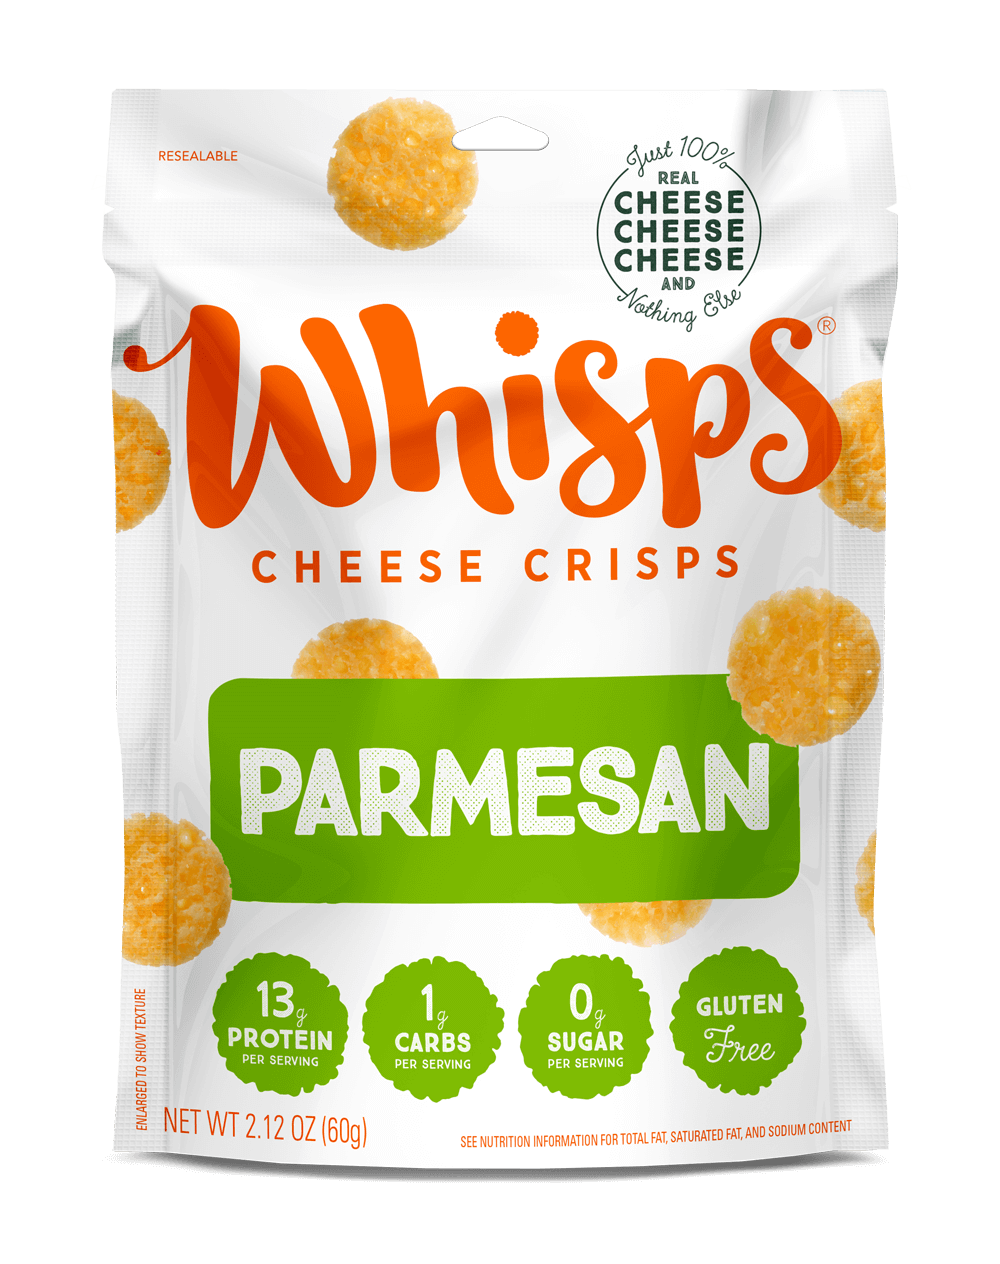 Buy Parmesan Cheese Crisps on Amazon